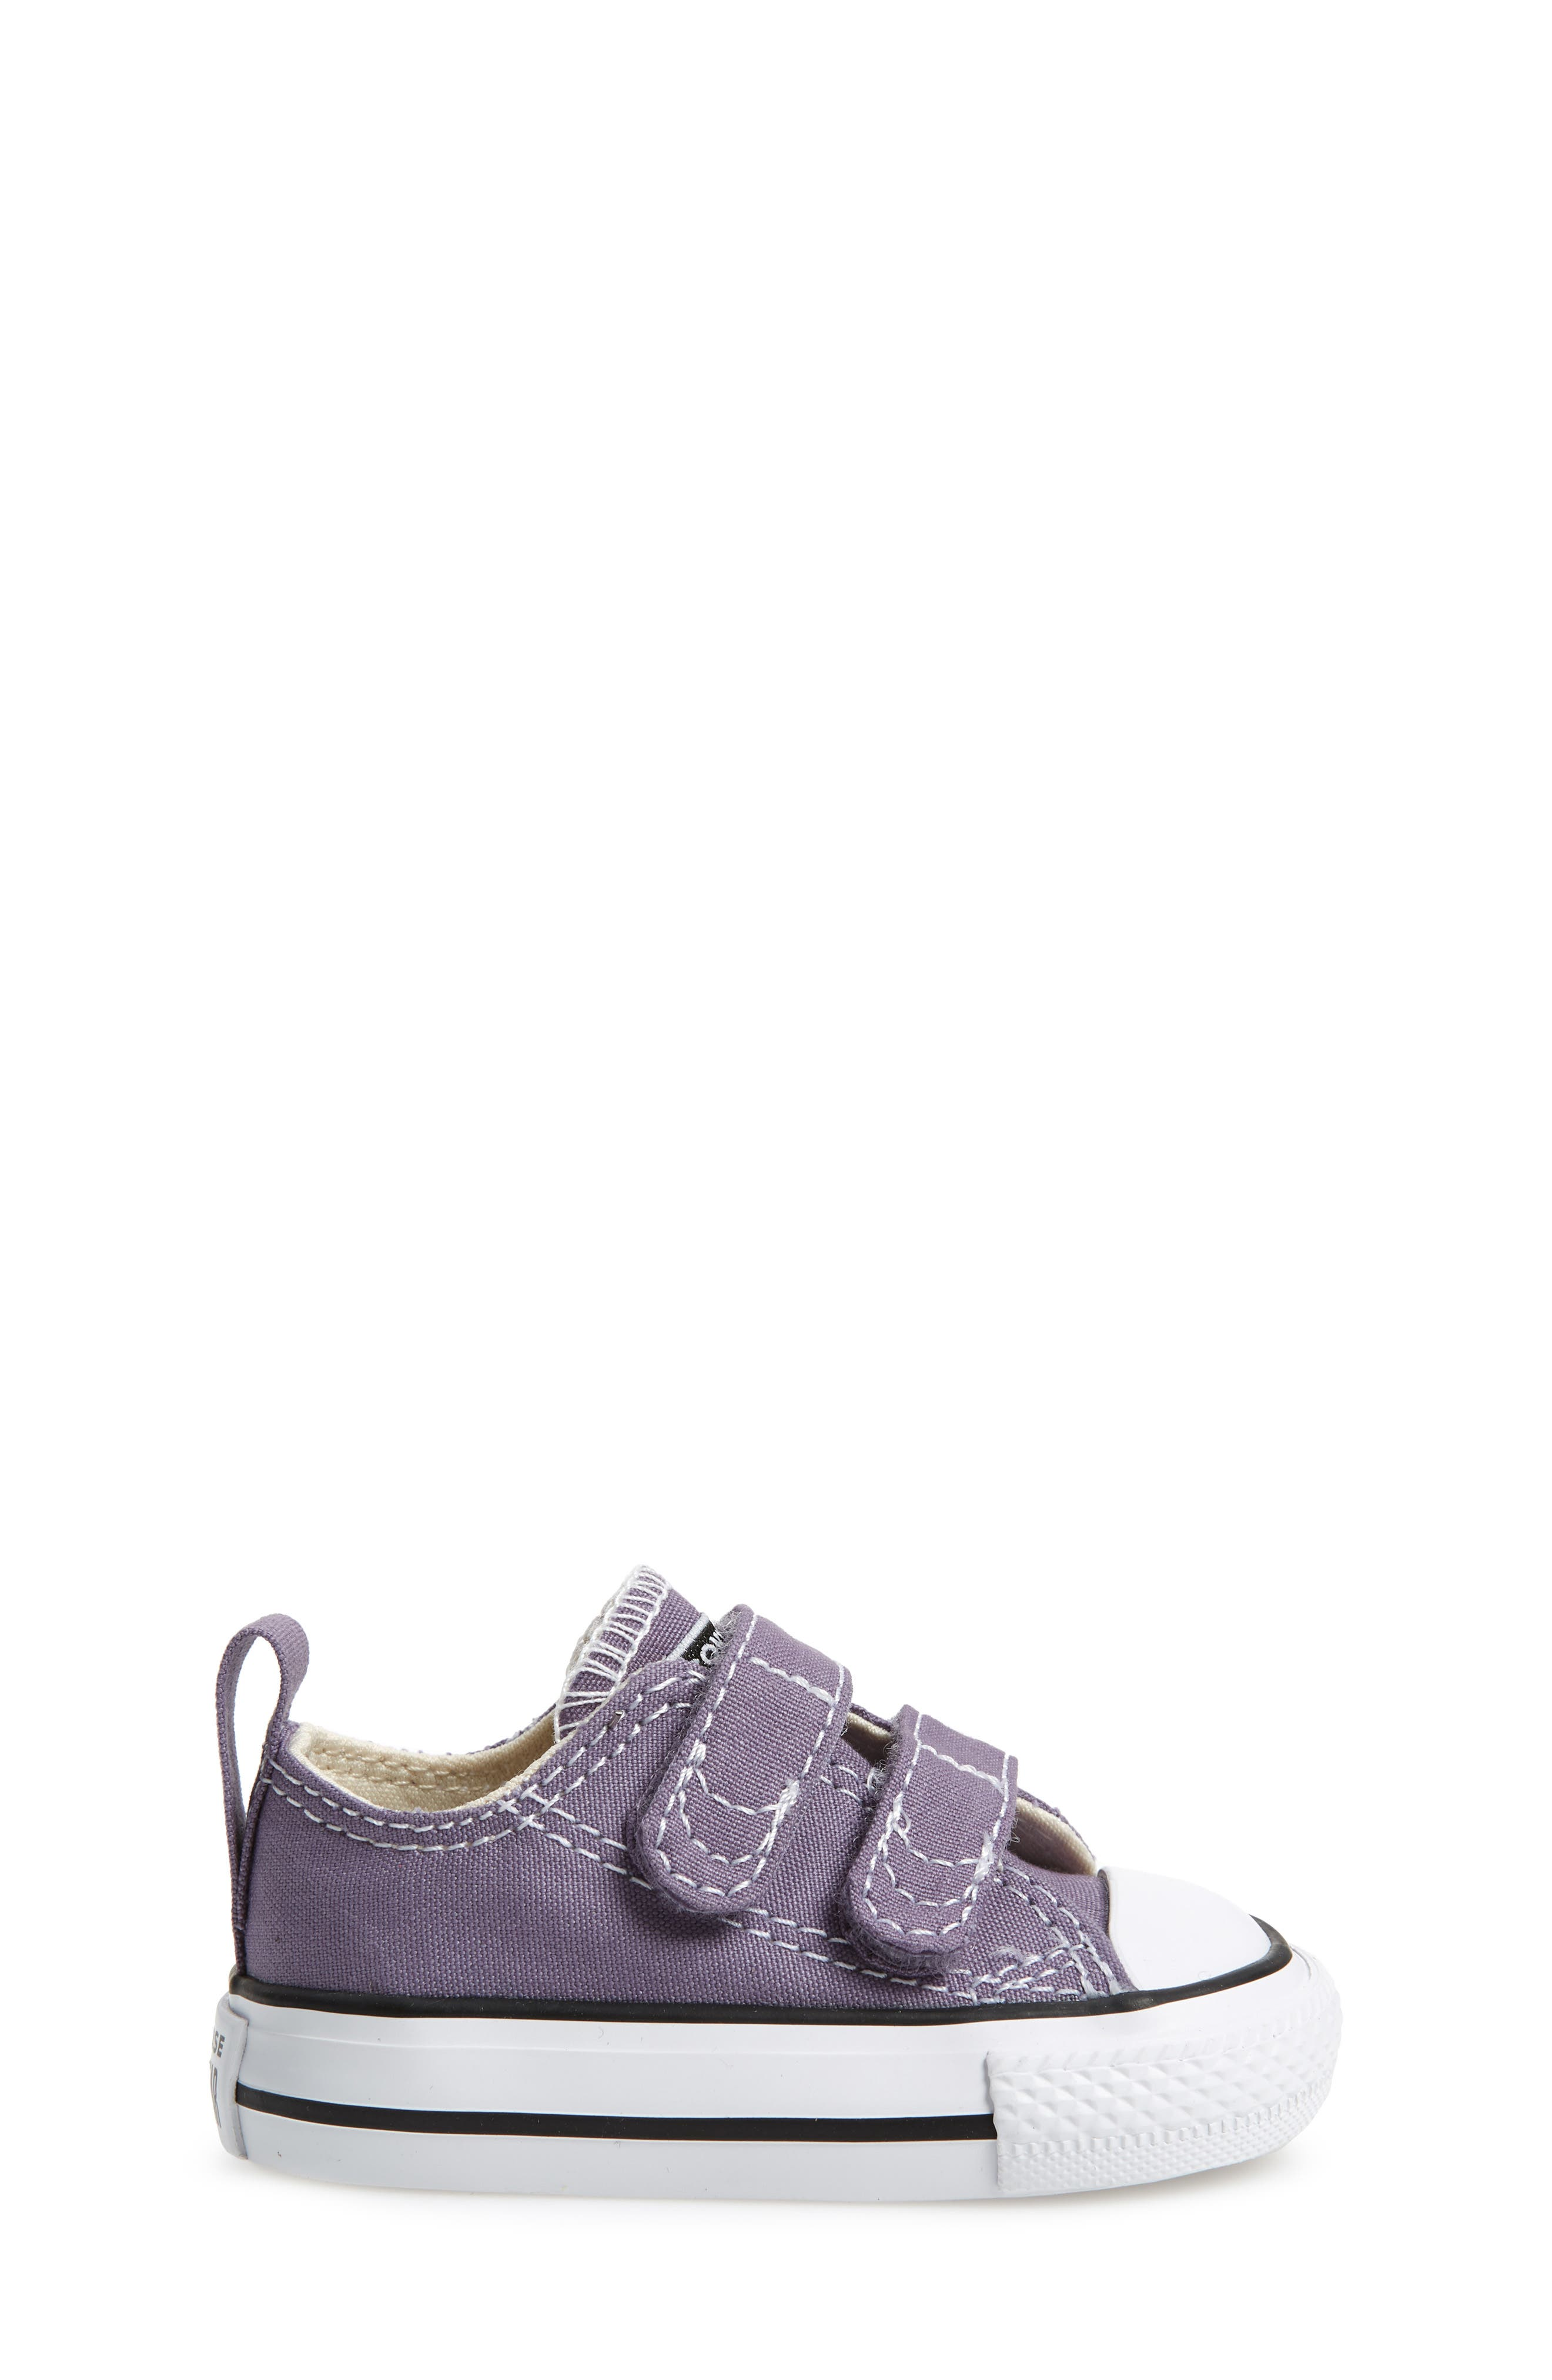 Chuck Taylor<sup>®</sup> 'Double Strap' Sneaker,                             Alternate thumbnail 3, color,                             MOODY PURPLE/ NATURAL IVORY